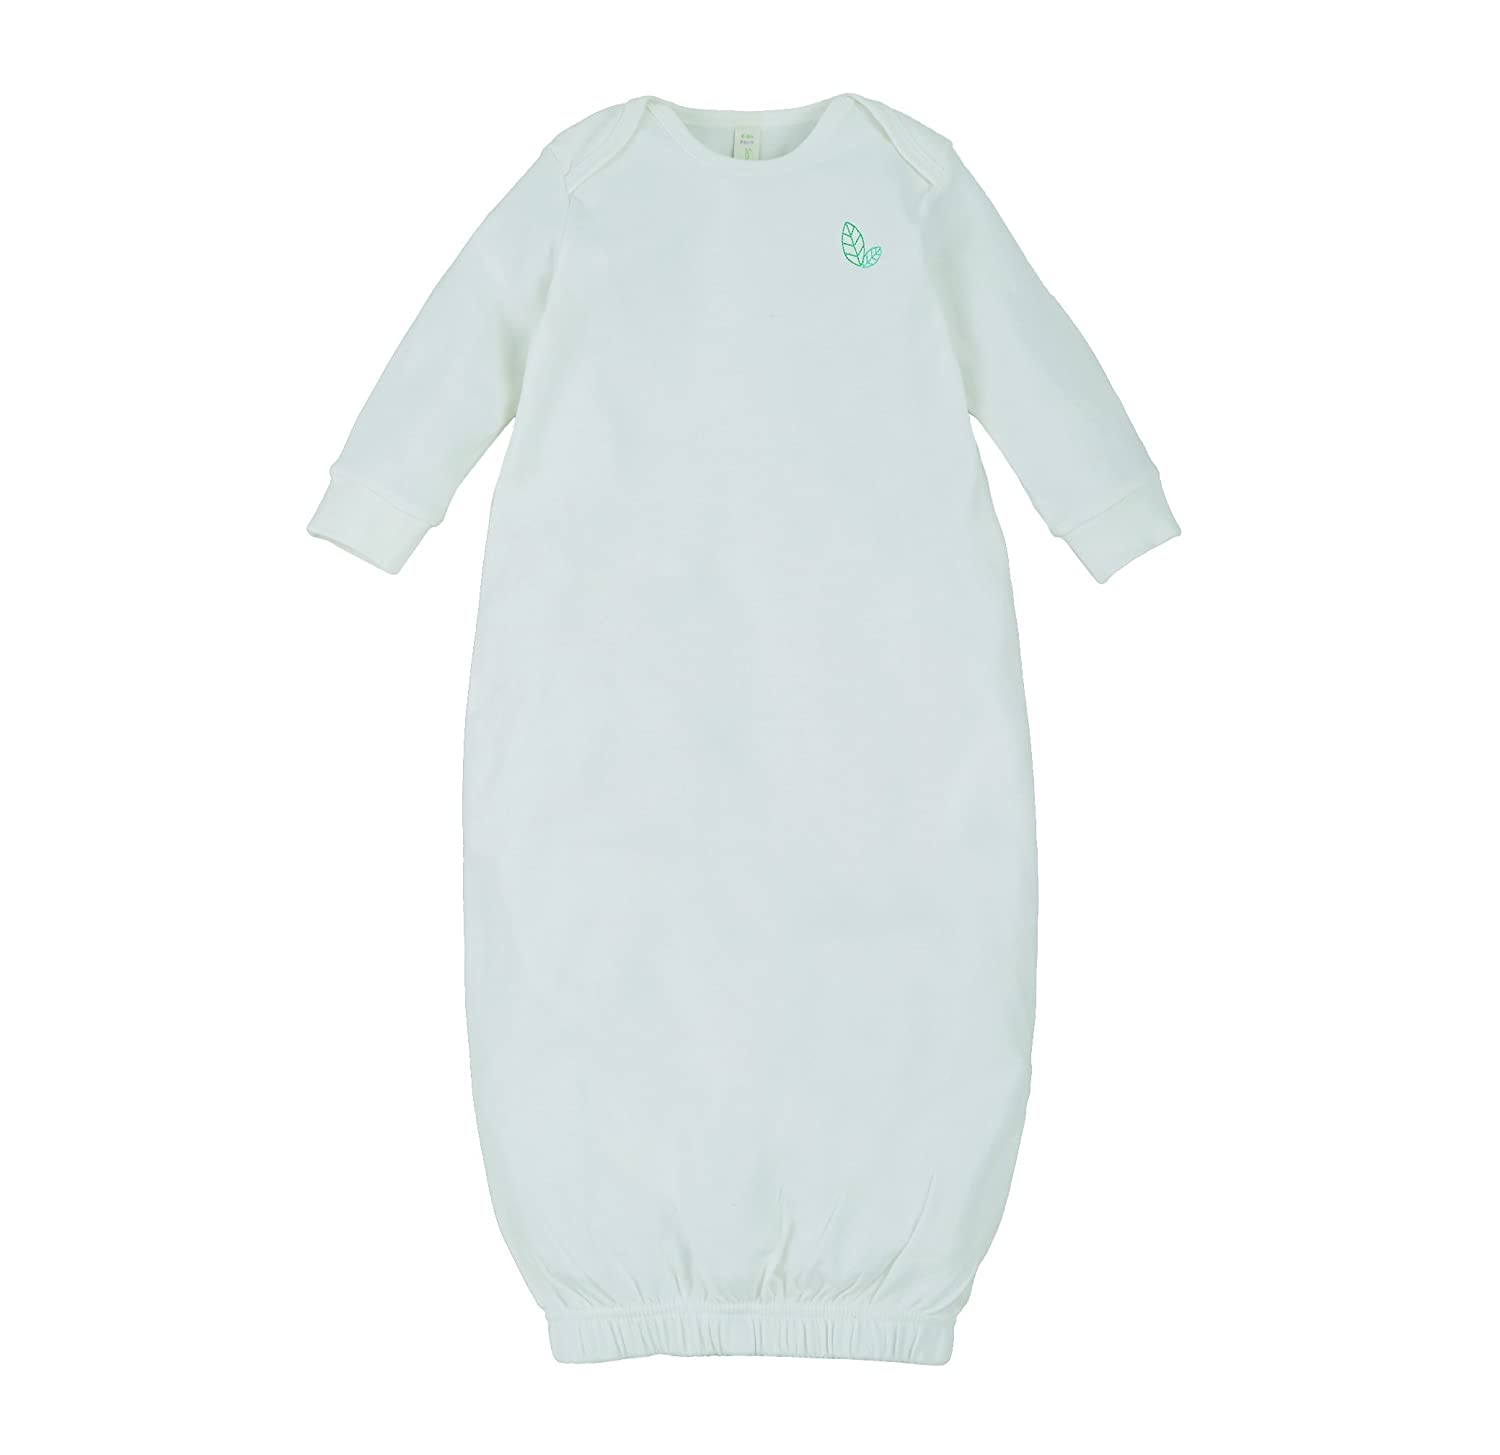 Sense Organics Unisex Baby Nightgown Off-White 8880710